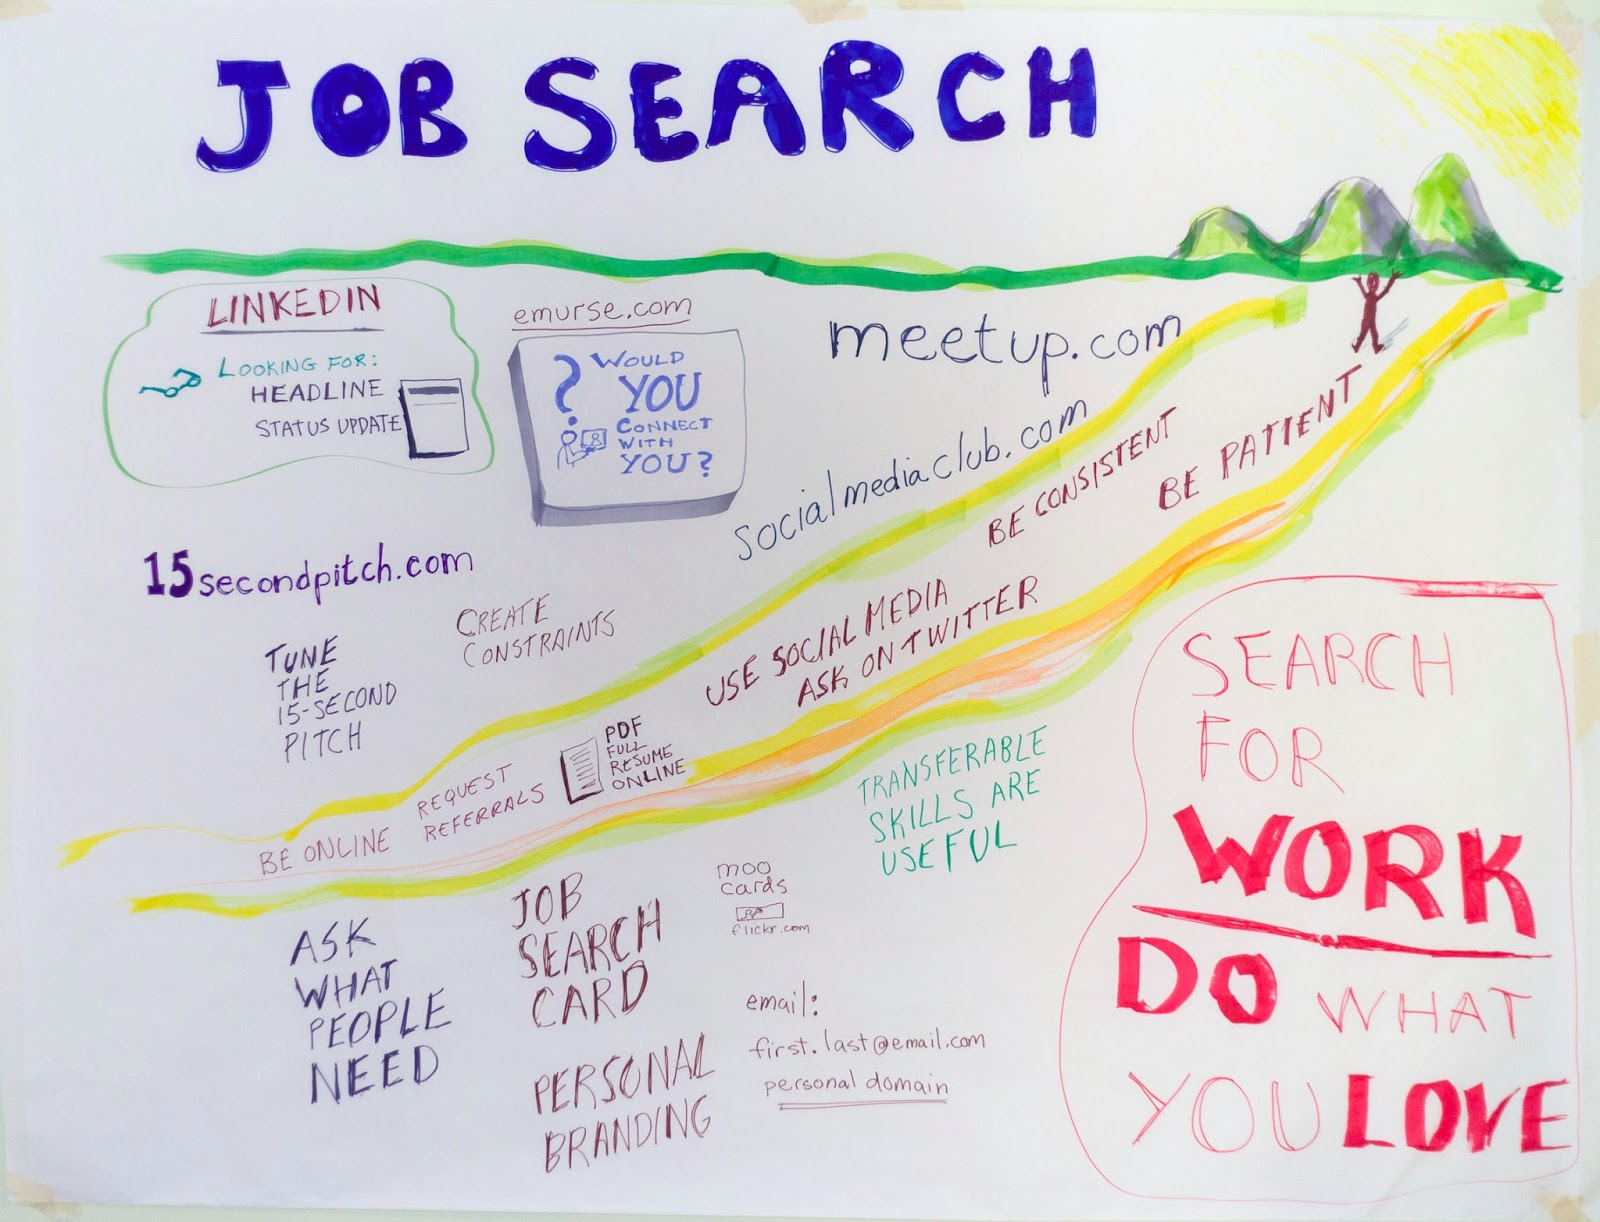 help i m not a geek finding a job using online resources it can be daunting it to look for a job if you are not comfortable technology many of the places to look for jobs are online